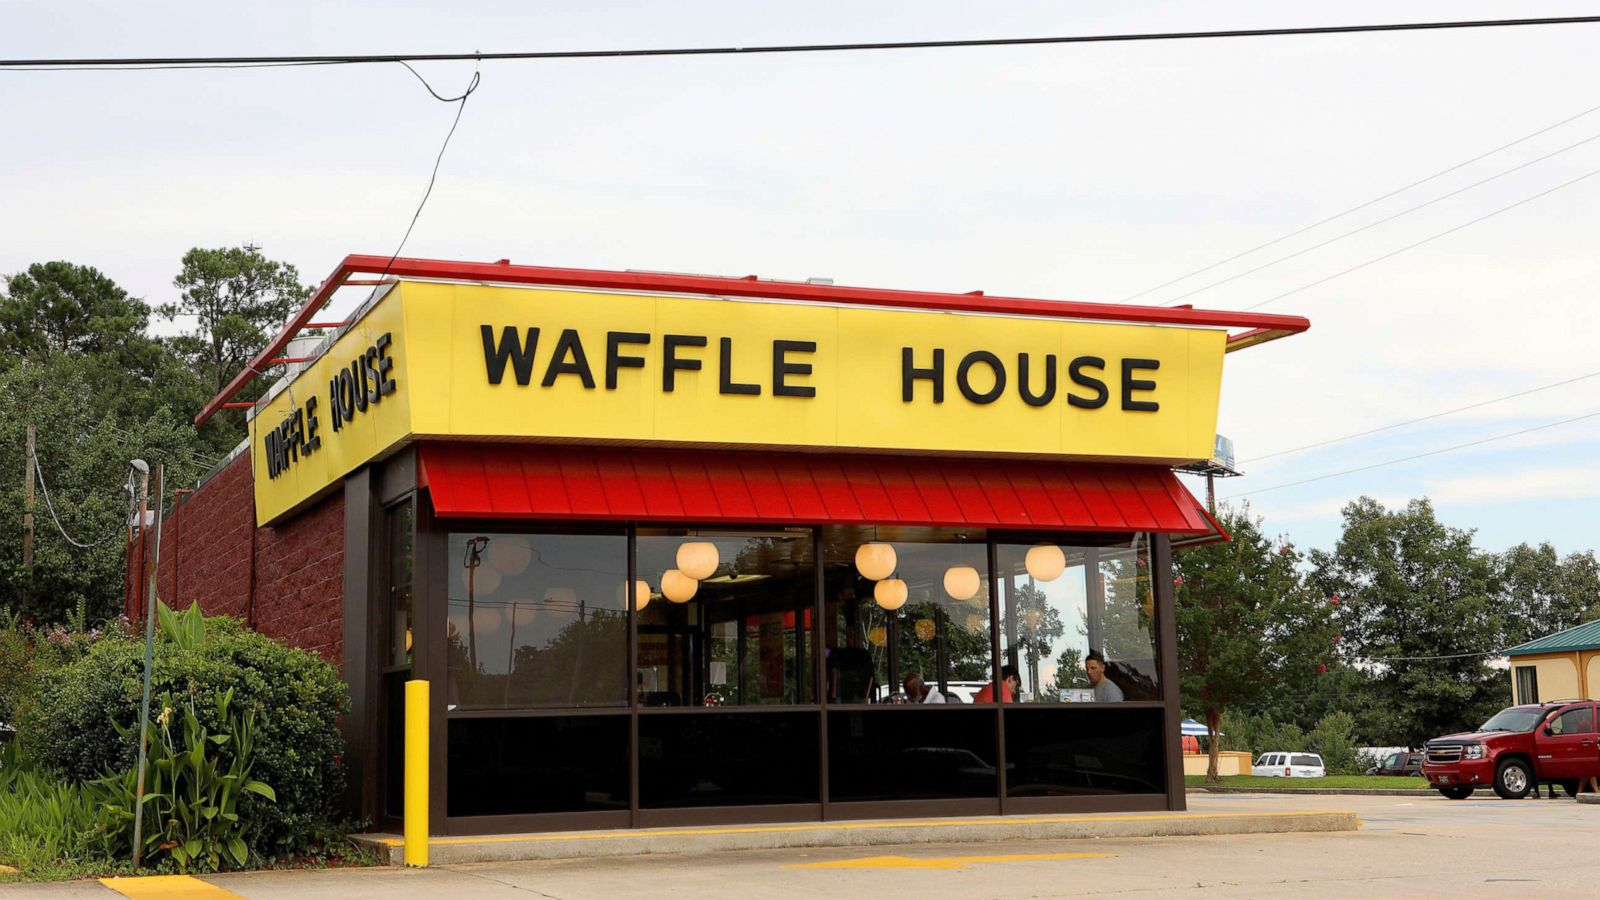 Waffle House Index The Unofficial Barometer For How Bad Things Are Dips Into The Red Abc News